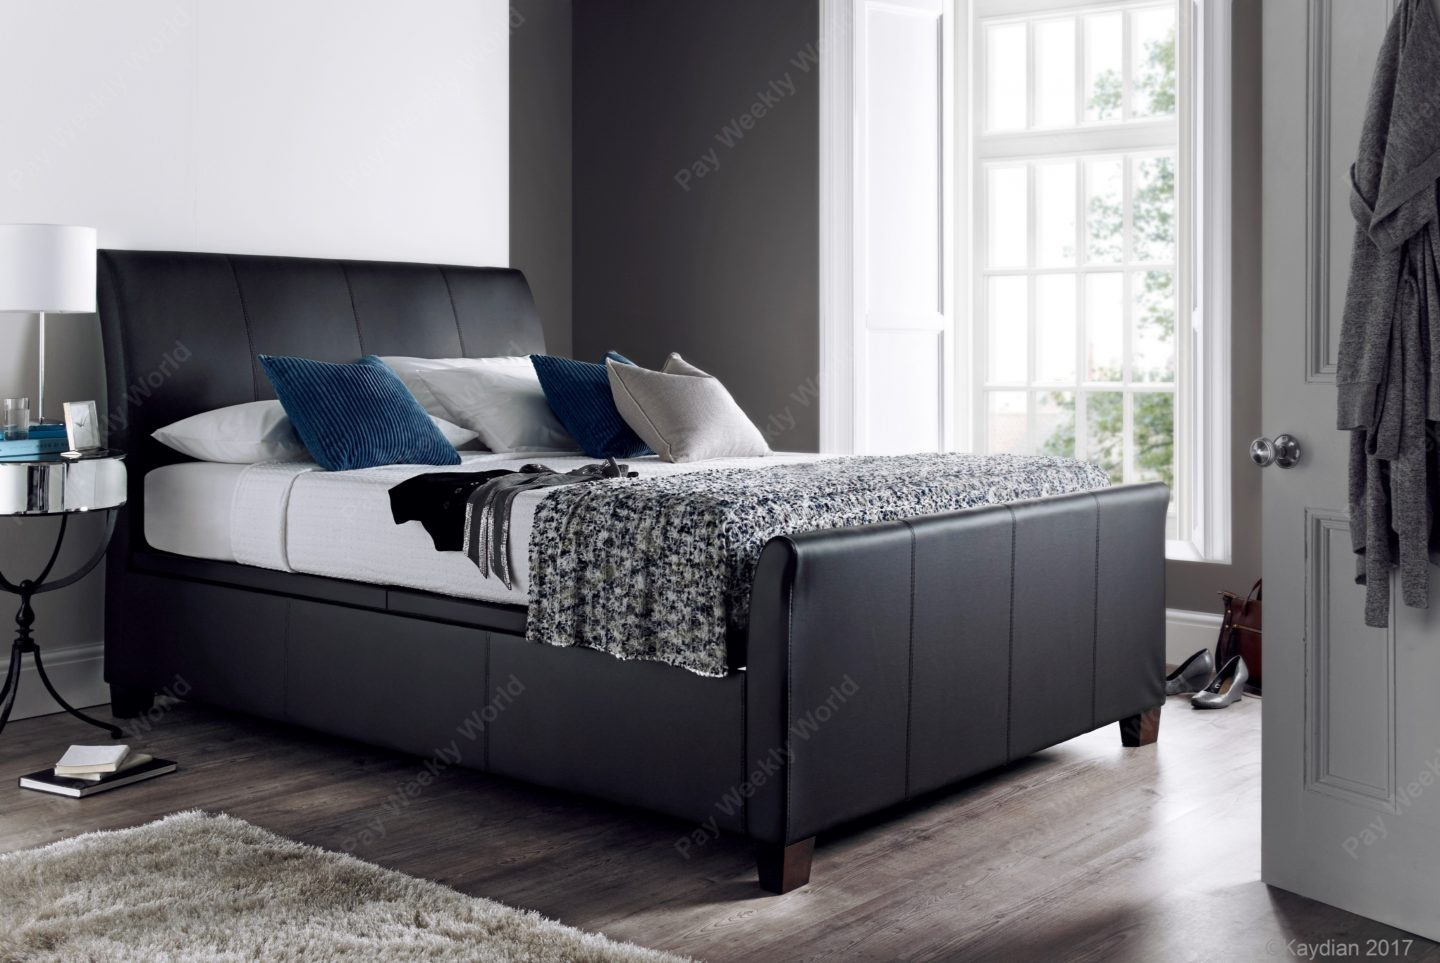 Allendale Ottoman Leather Bed Range - Black